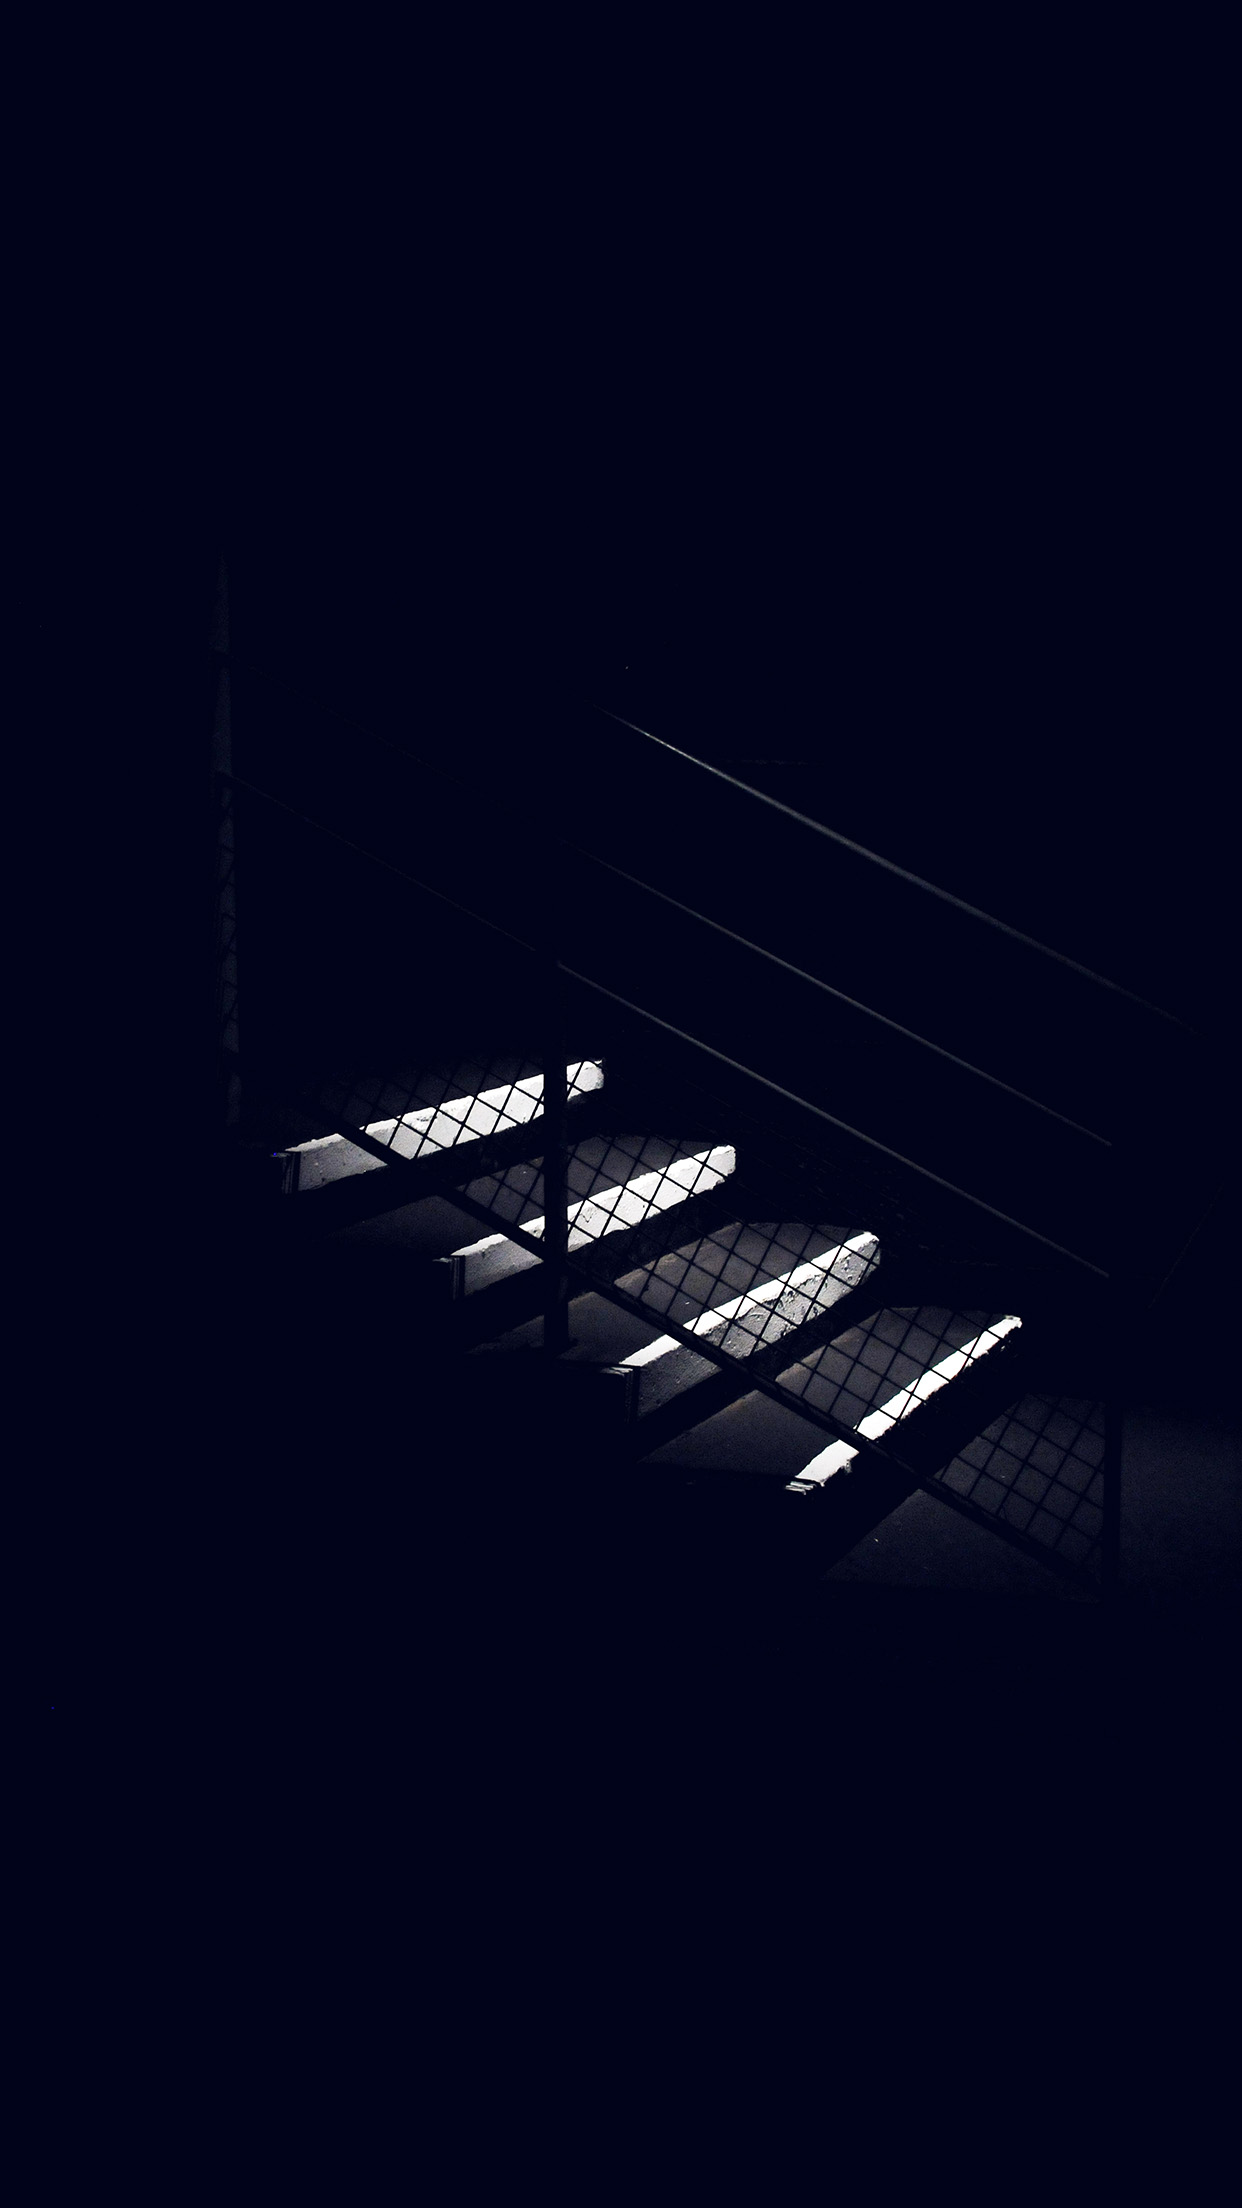 Iphone6papers Com Iphone 6 Wallpaper Nf69 Dark Stairs